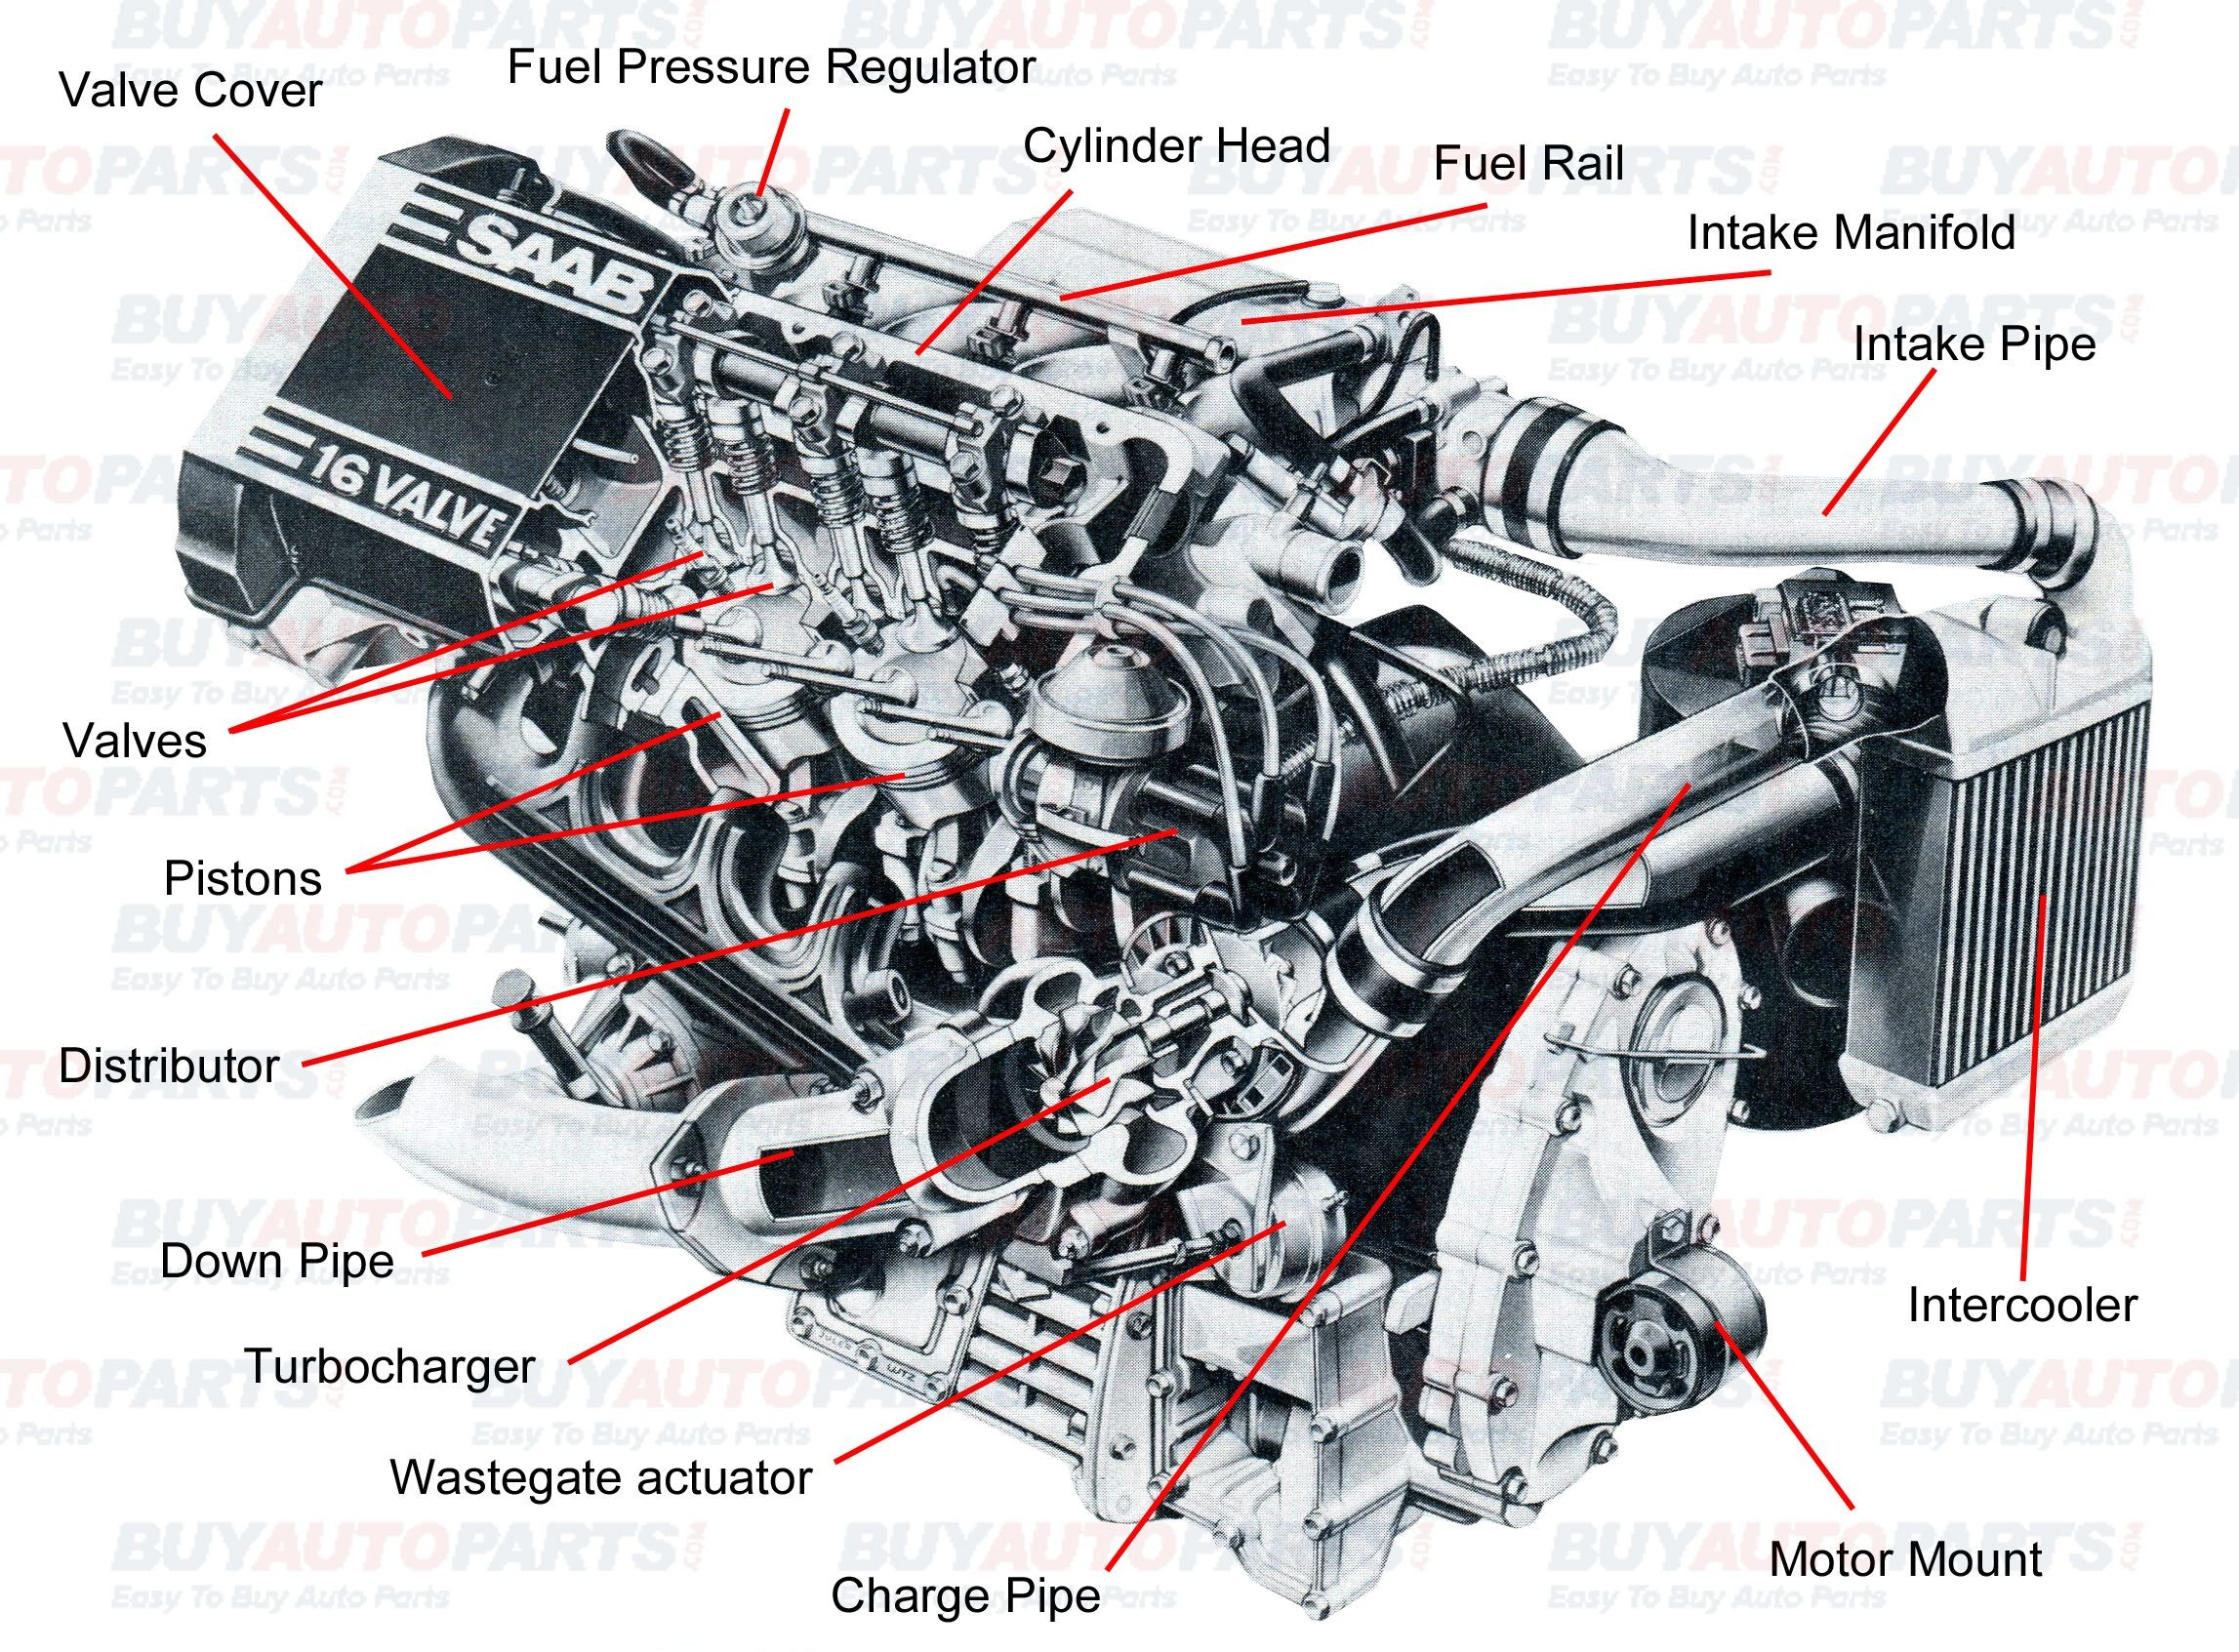 Toyota Truck Parts Diagram Pin by Jimmiejanet Testellamwfz On What Does An Engine with Of Toyota Truck Parts Diagram